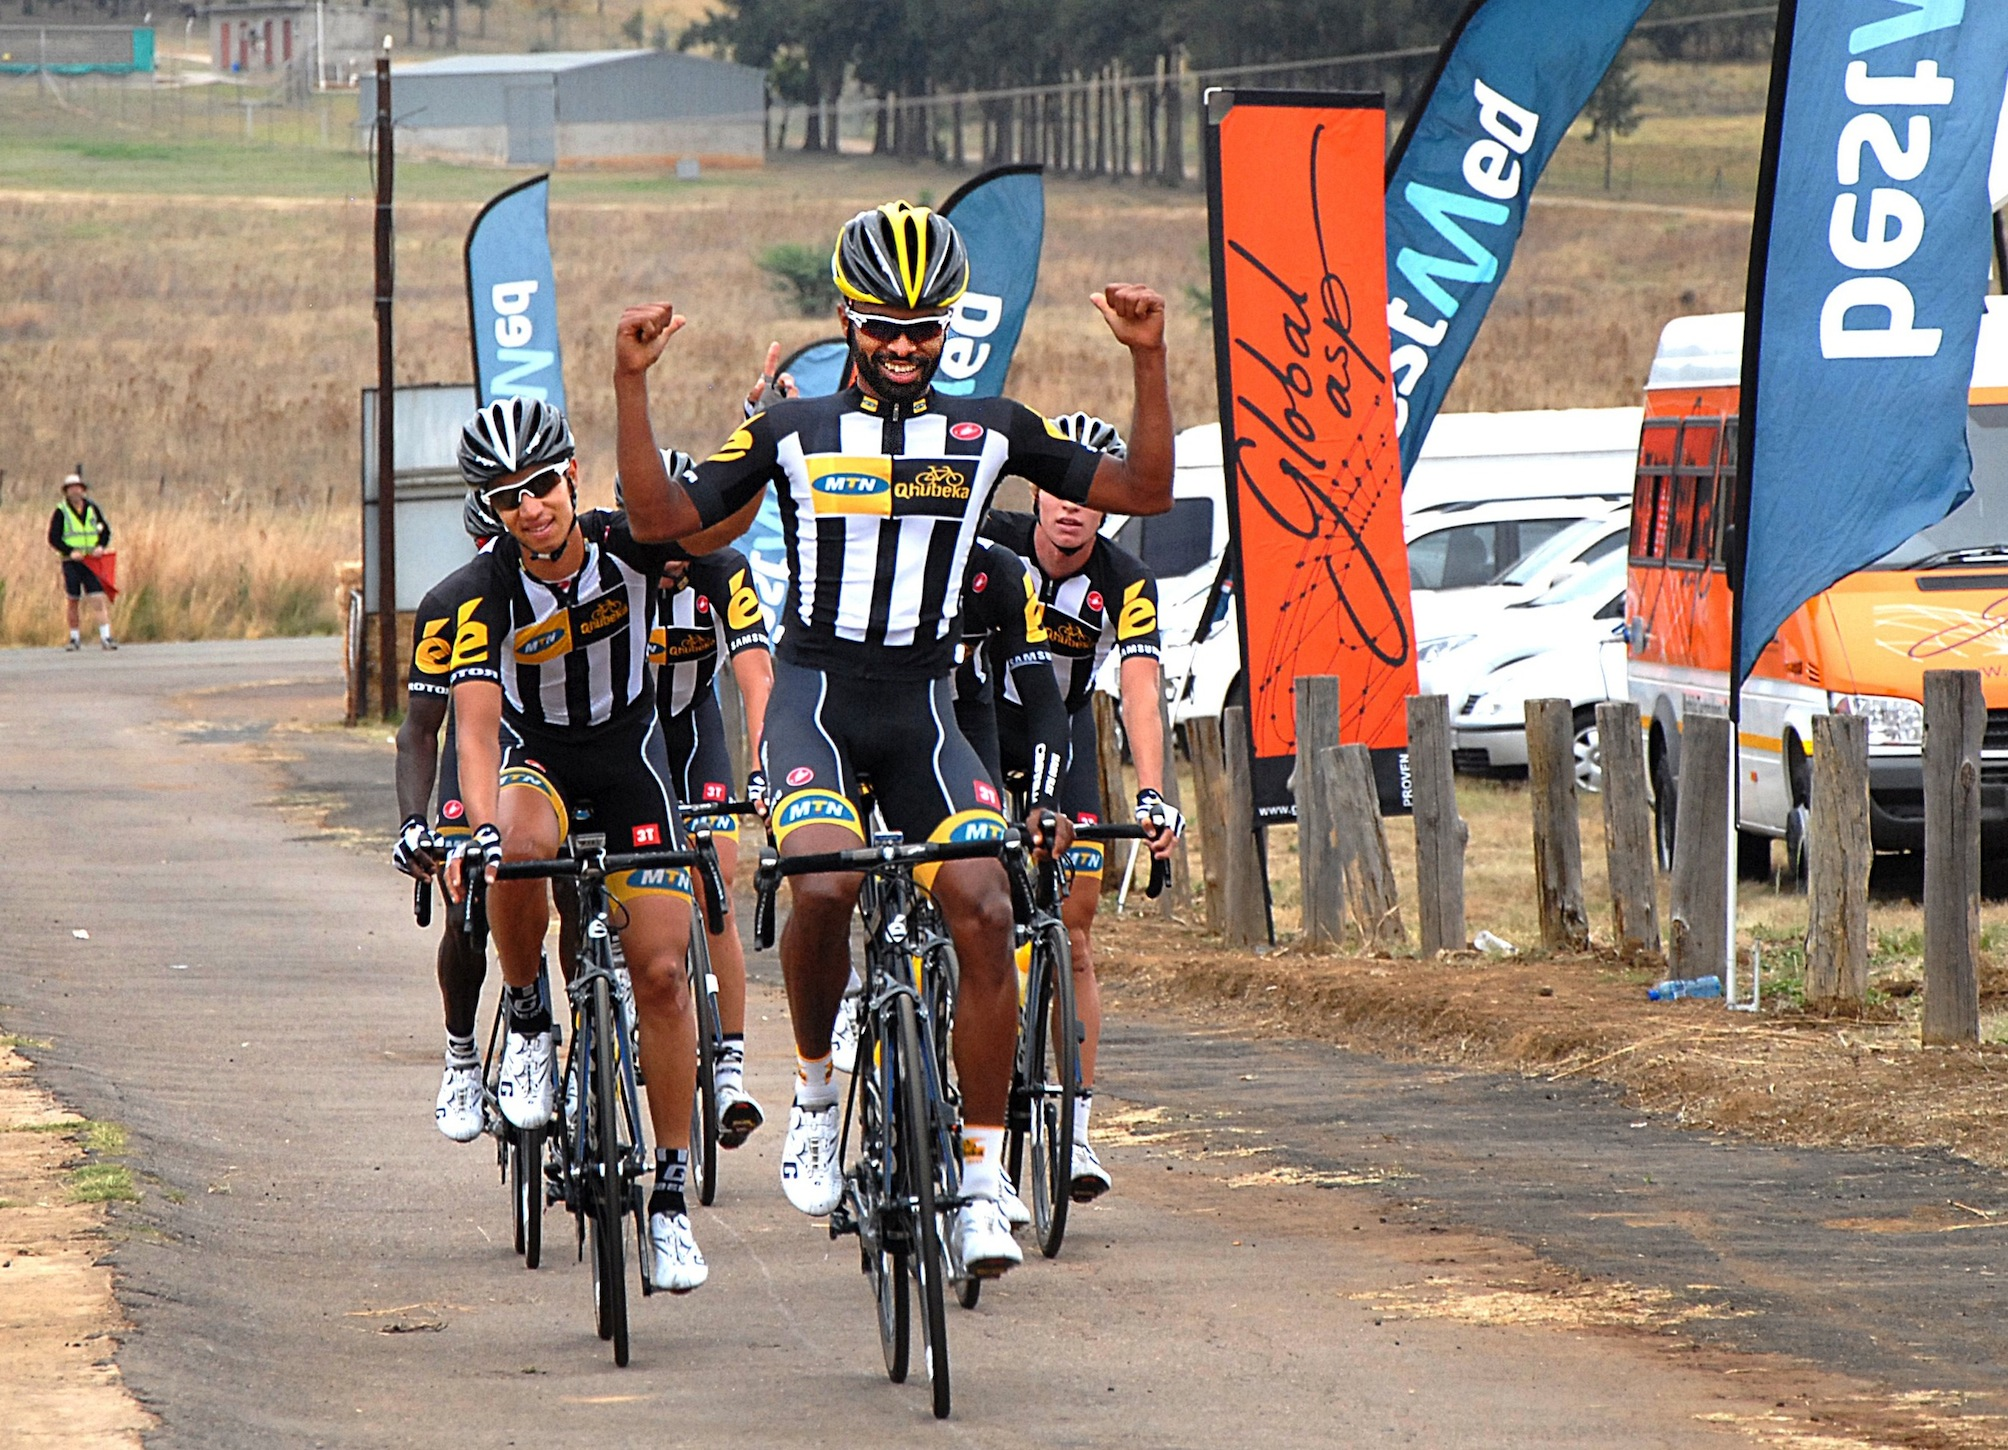 Africa Games gold medallist Meron Teshome said farewell to his MTN-Qhubeka teammates in fine style when he raced to victory in the Bestmed Satellite Classic, presented by ASG, near Hartbeespoort Dam on Saturday.